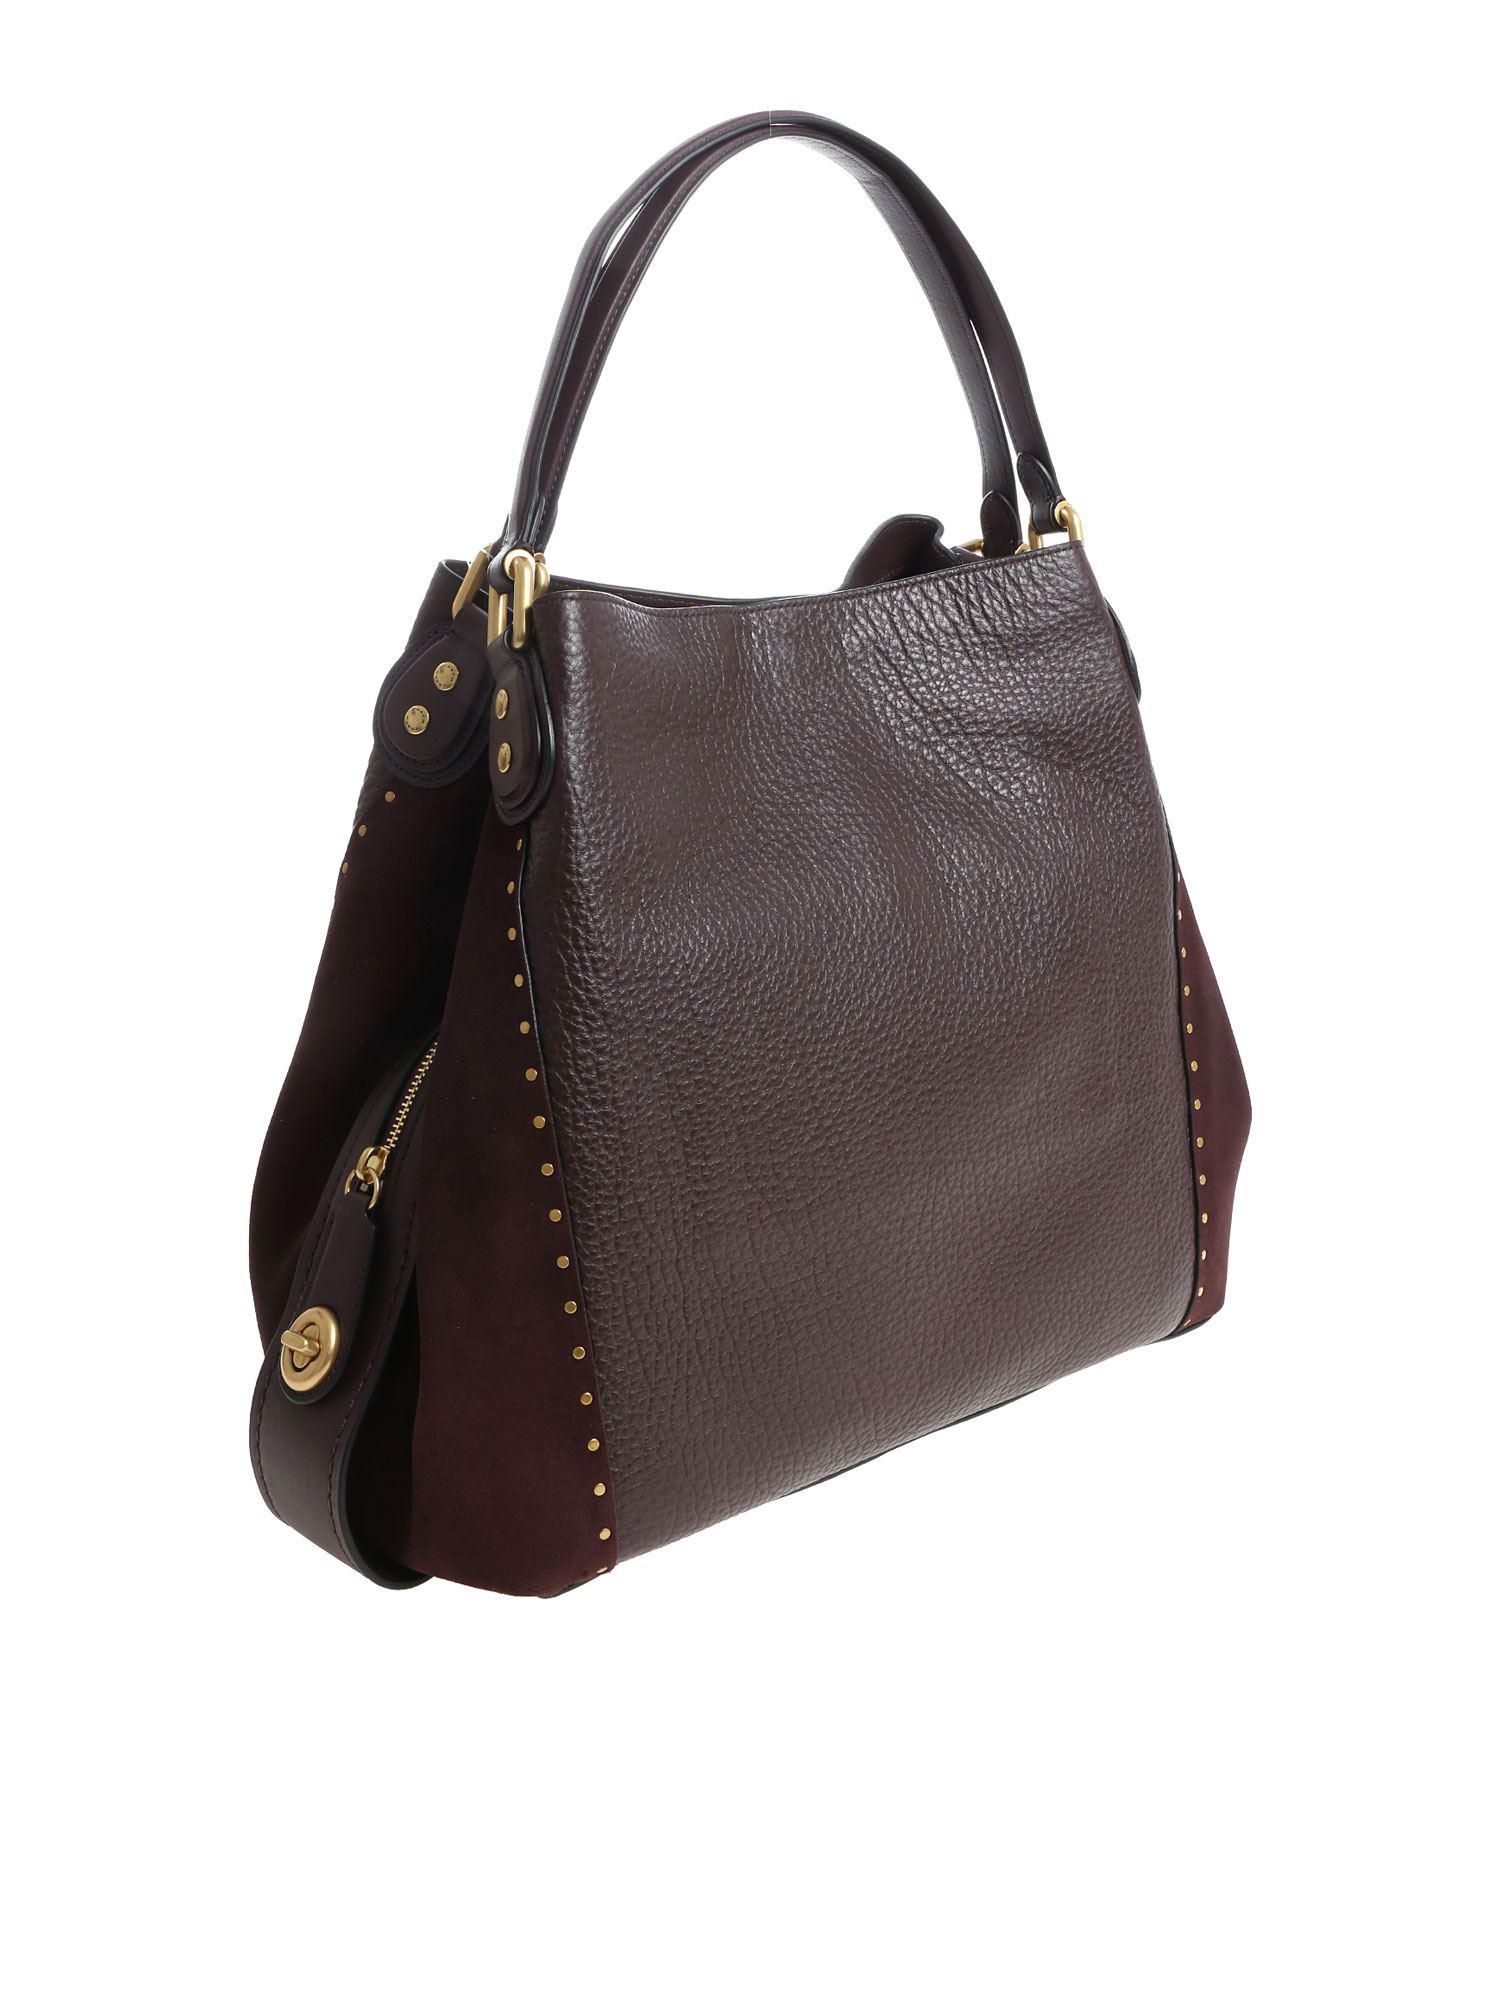 8e409537a9 COACH – Multicolor Burgundy Leather Shoulder Bag – Lyst. View fullscreen. Holt  Renfrew ...